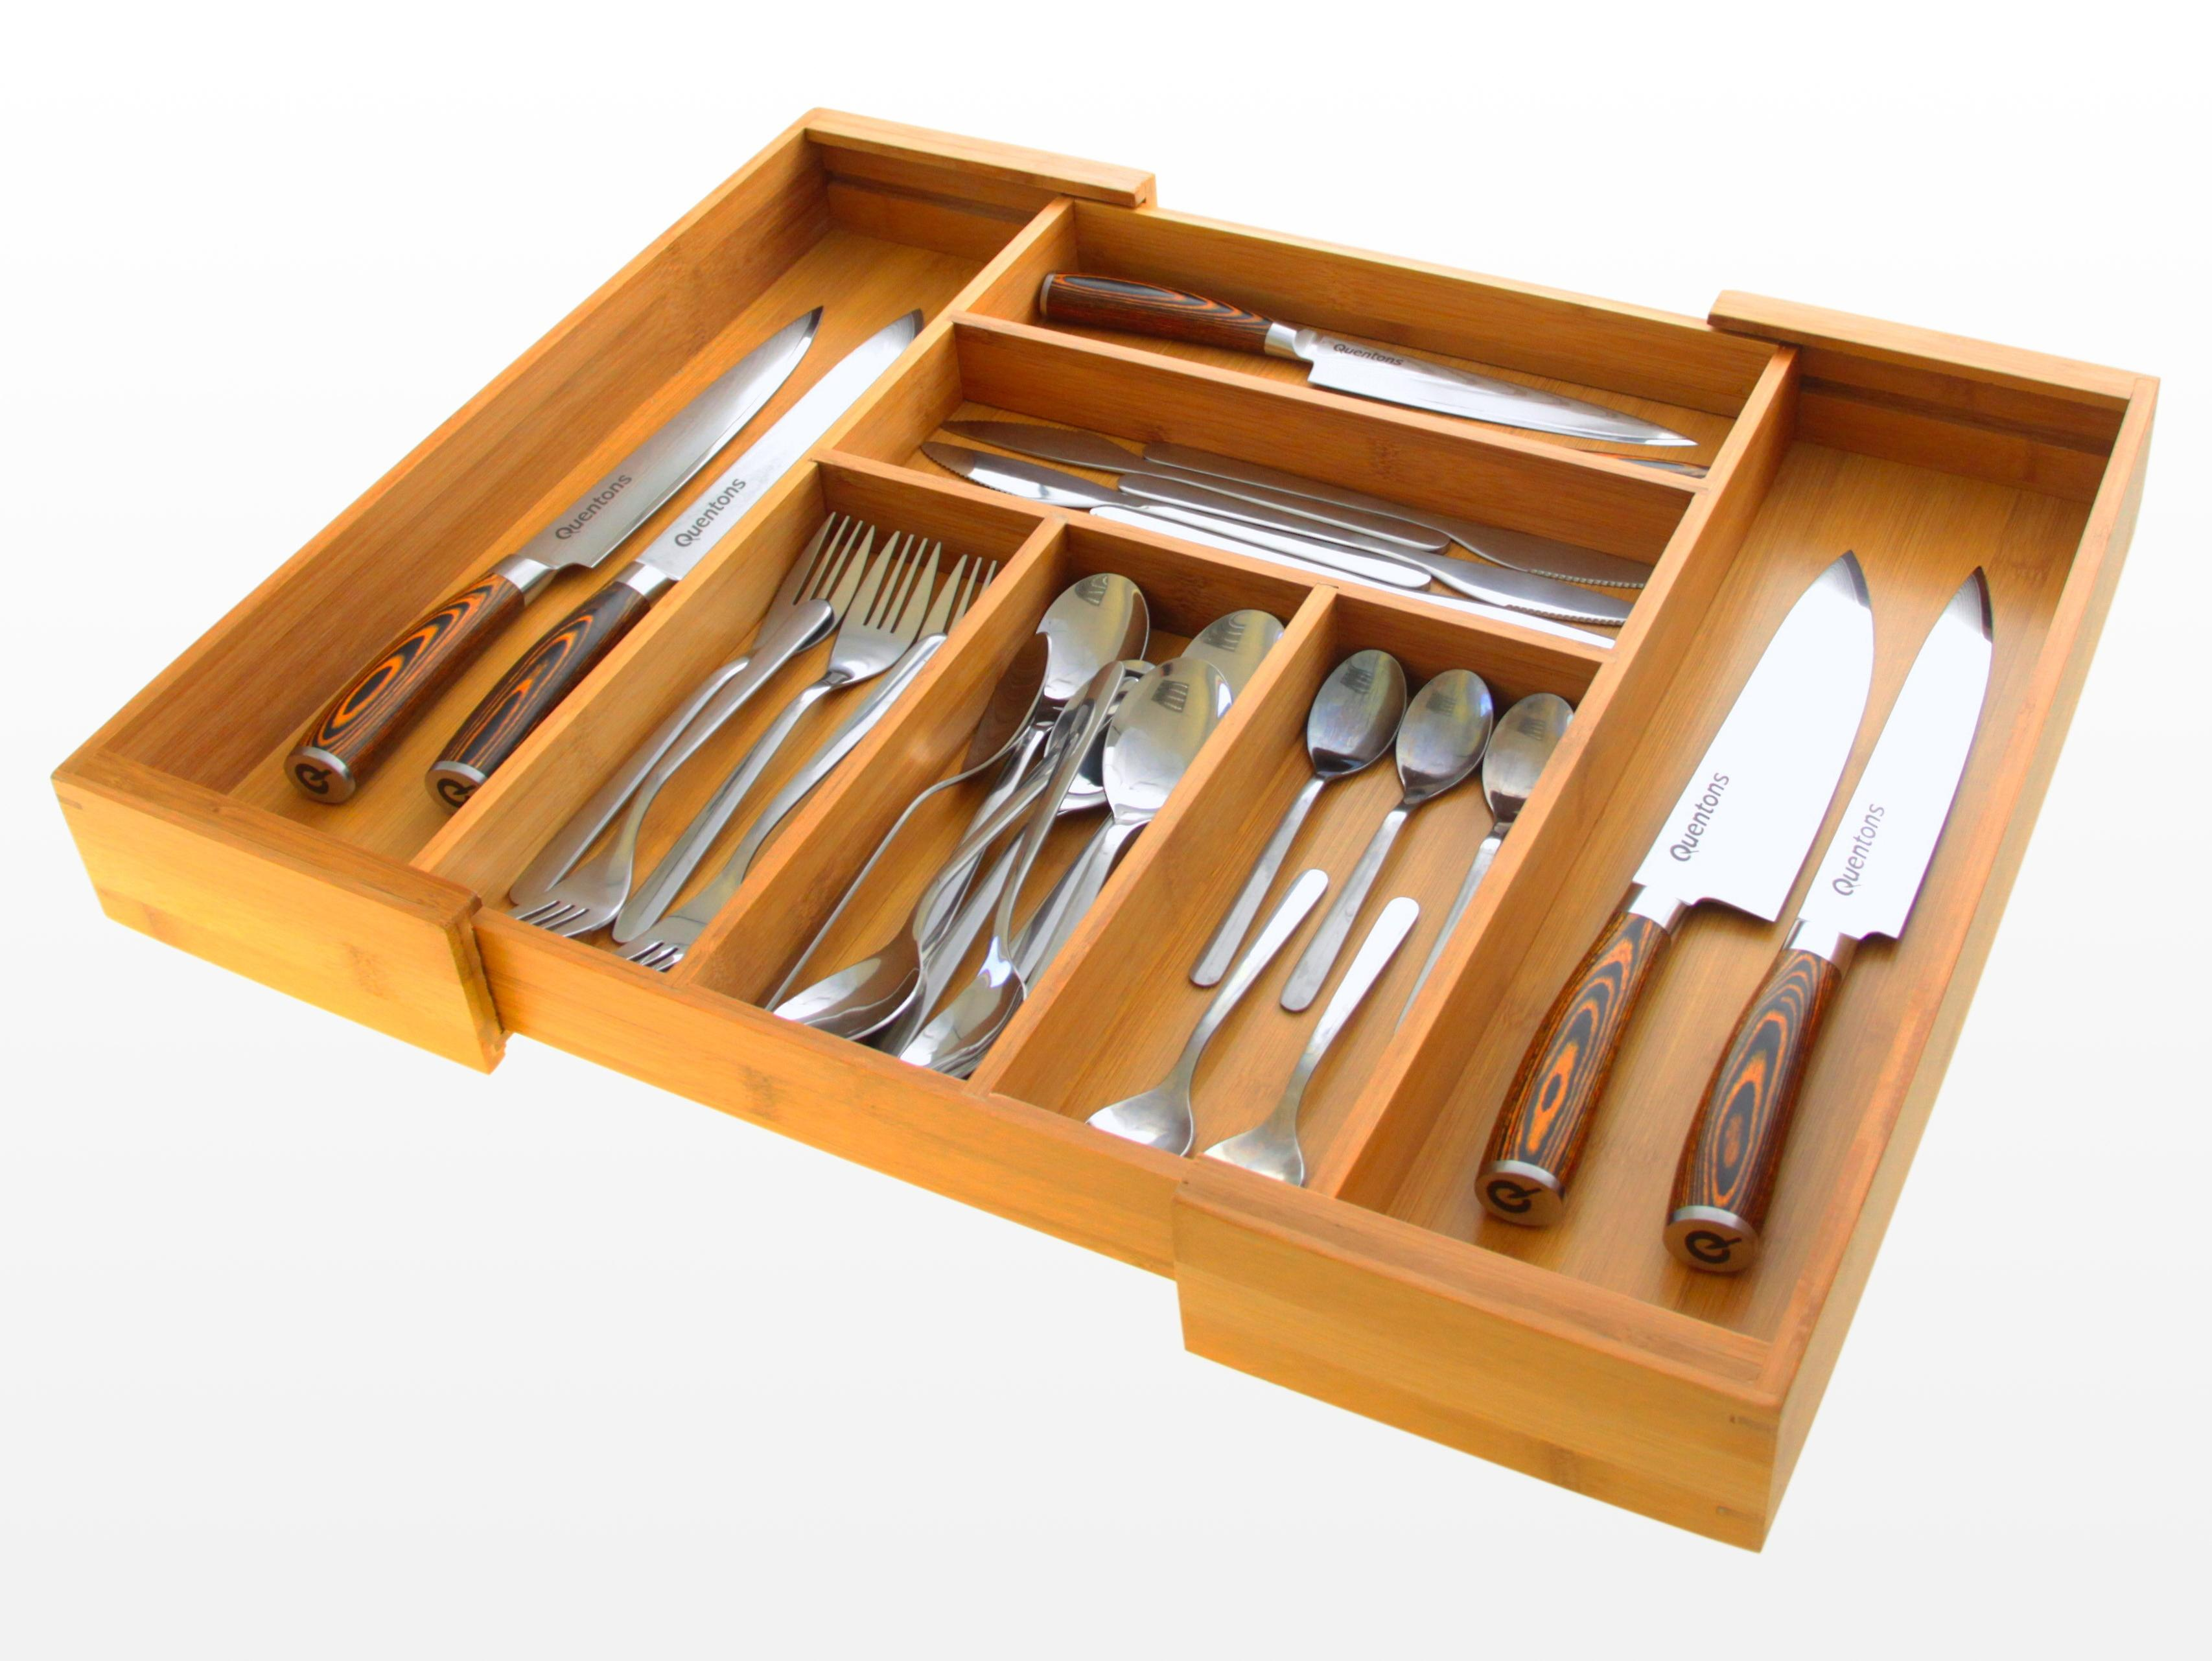 Woodquail Bamboo Expandable Kitchen Cutlery Flatware tray, Drawer Inserts Organizer 33-56.5cm